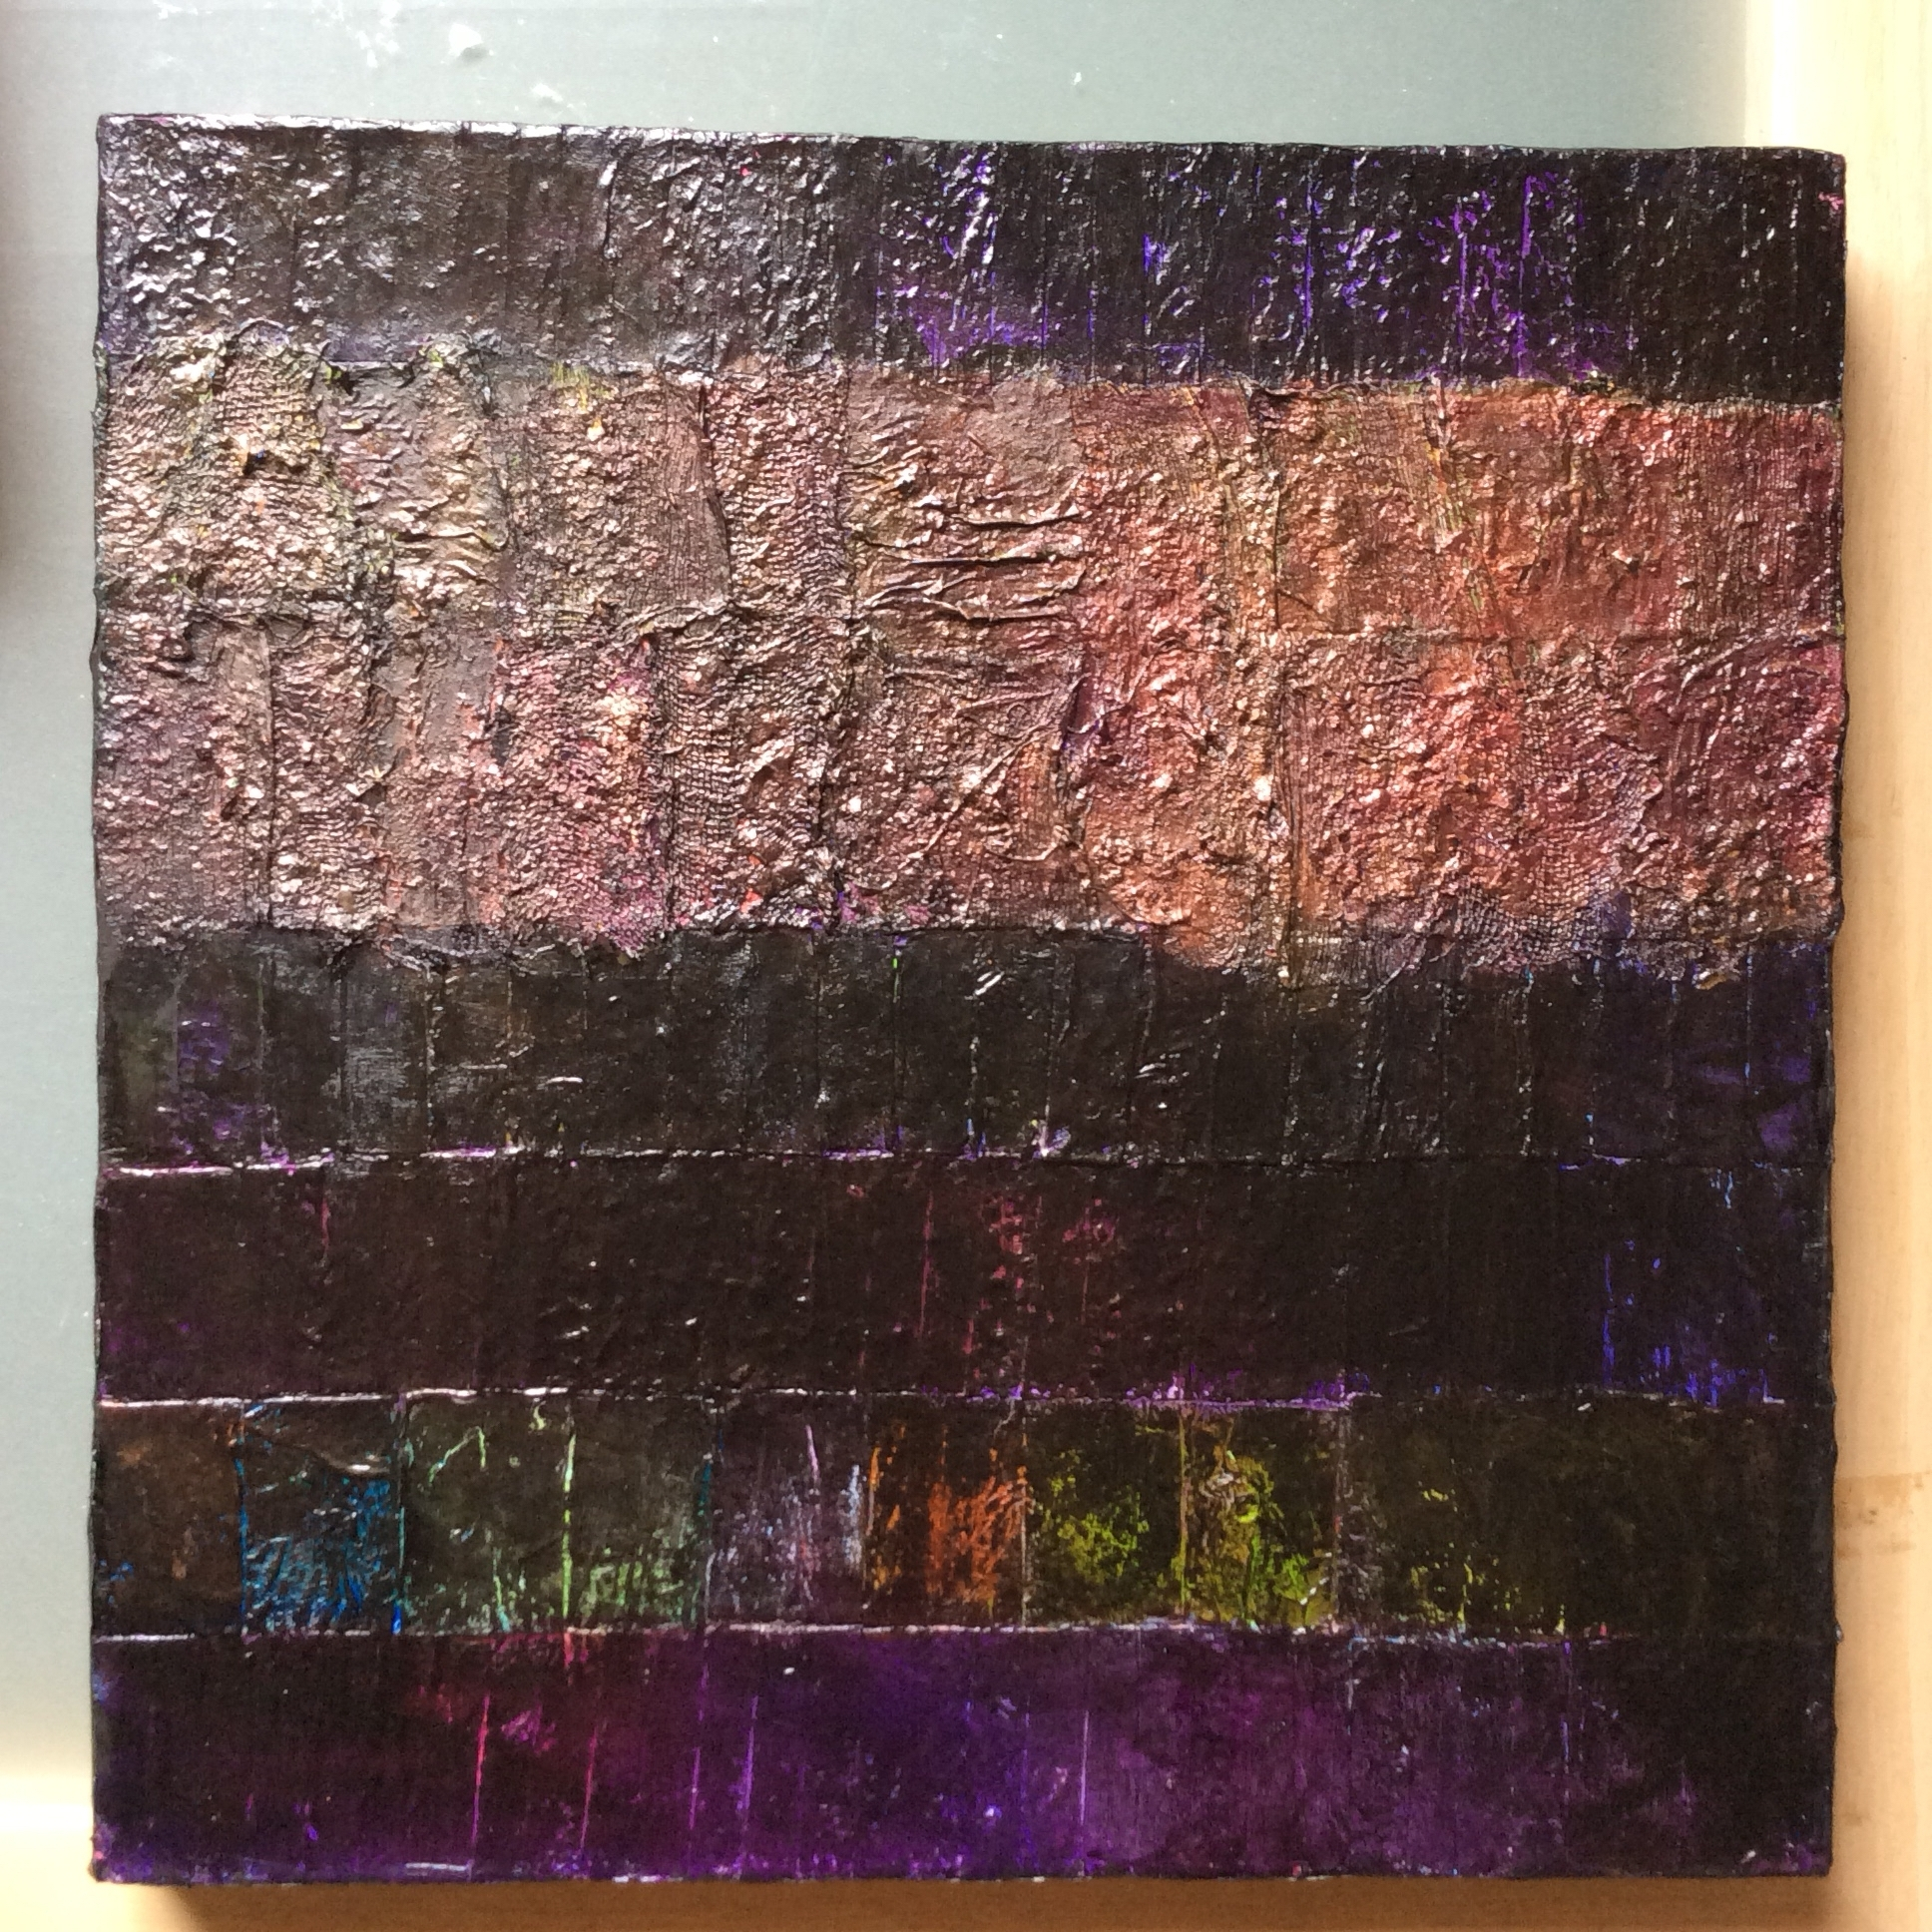 Night Strata, A Black And Bronze Collage, With Fabric, Paper Intended For Current Fabric Collage Wall Art (Gallery 4 of 15)